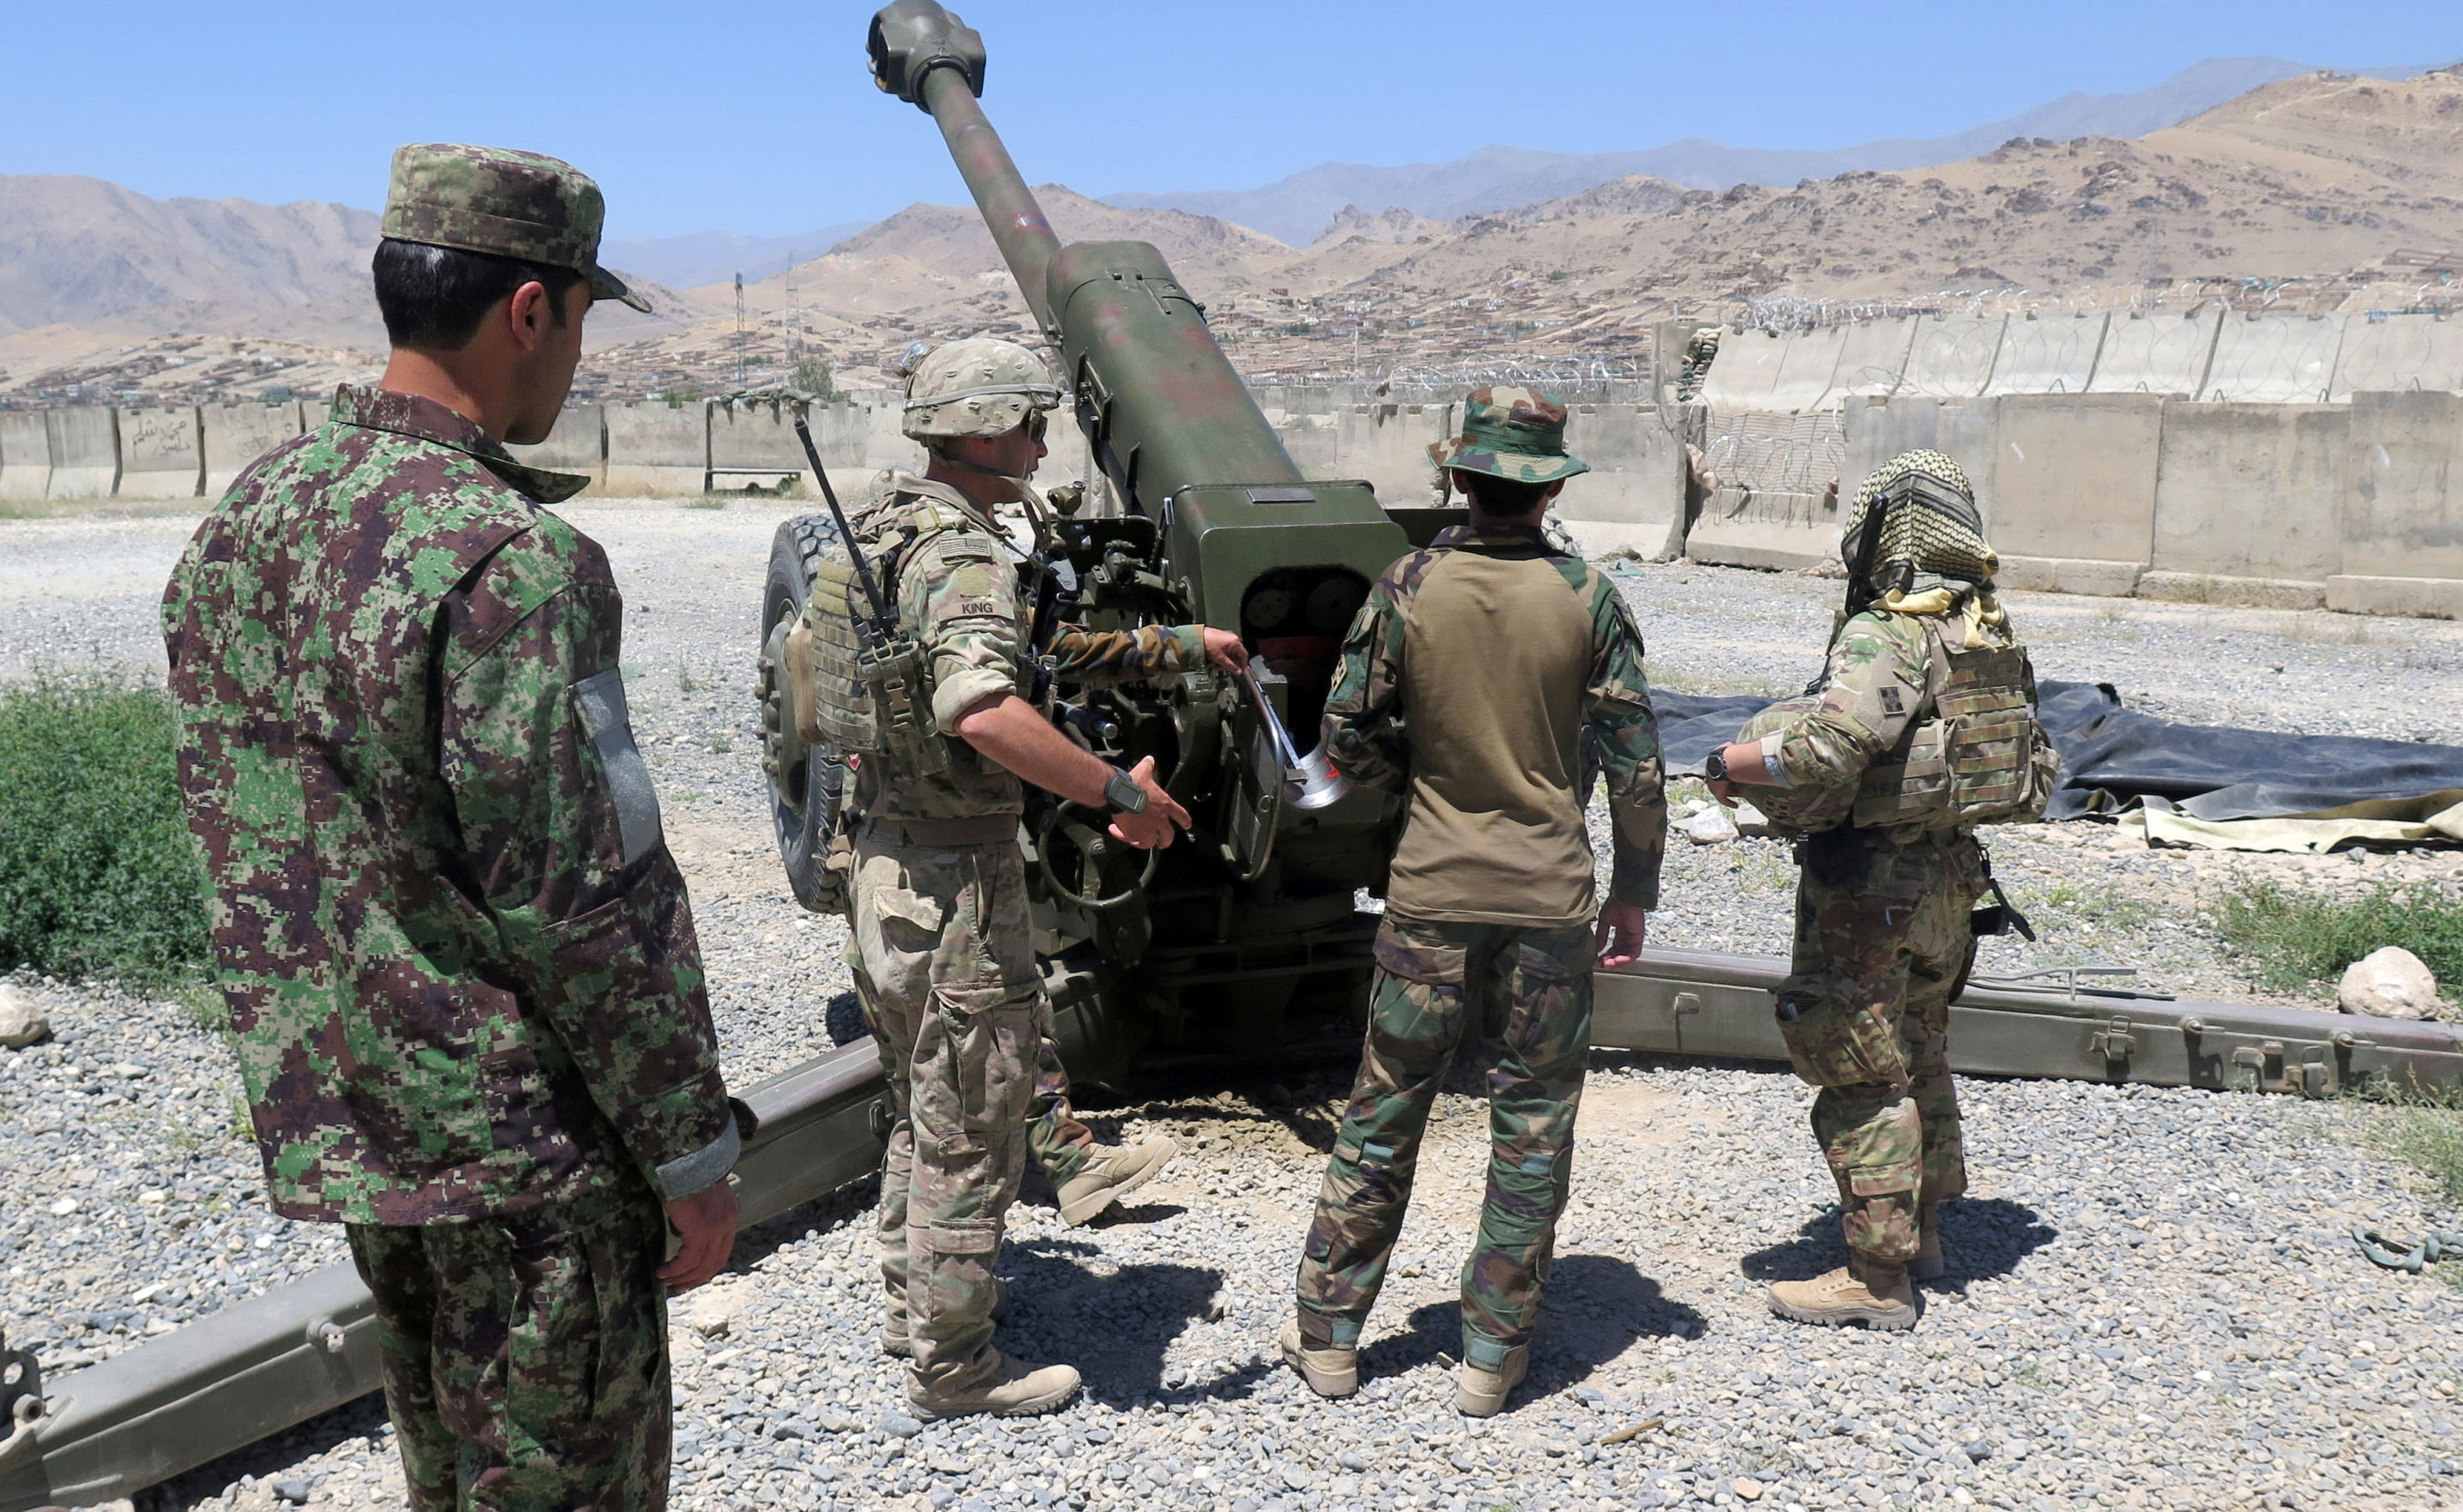 U.S. military advisers from the 1st Security Force Assistance Brigade work with Afghan soldiers at an artillery position on an Afghan National Army base in Maidan Wardak province